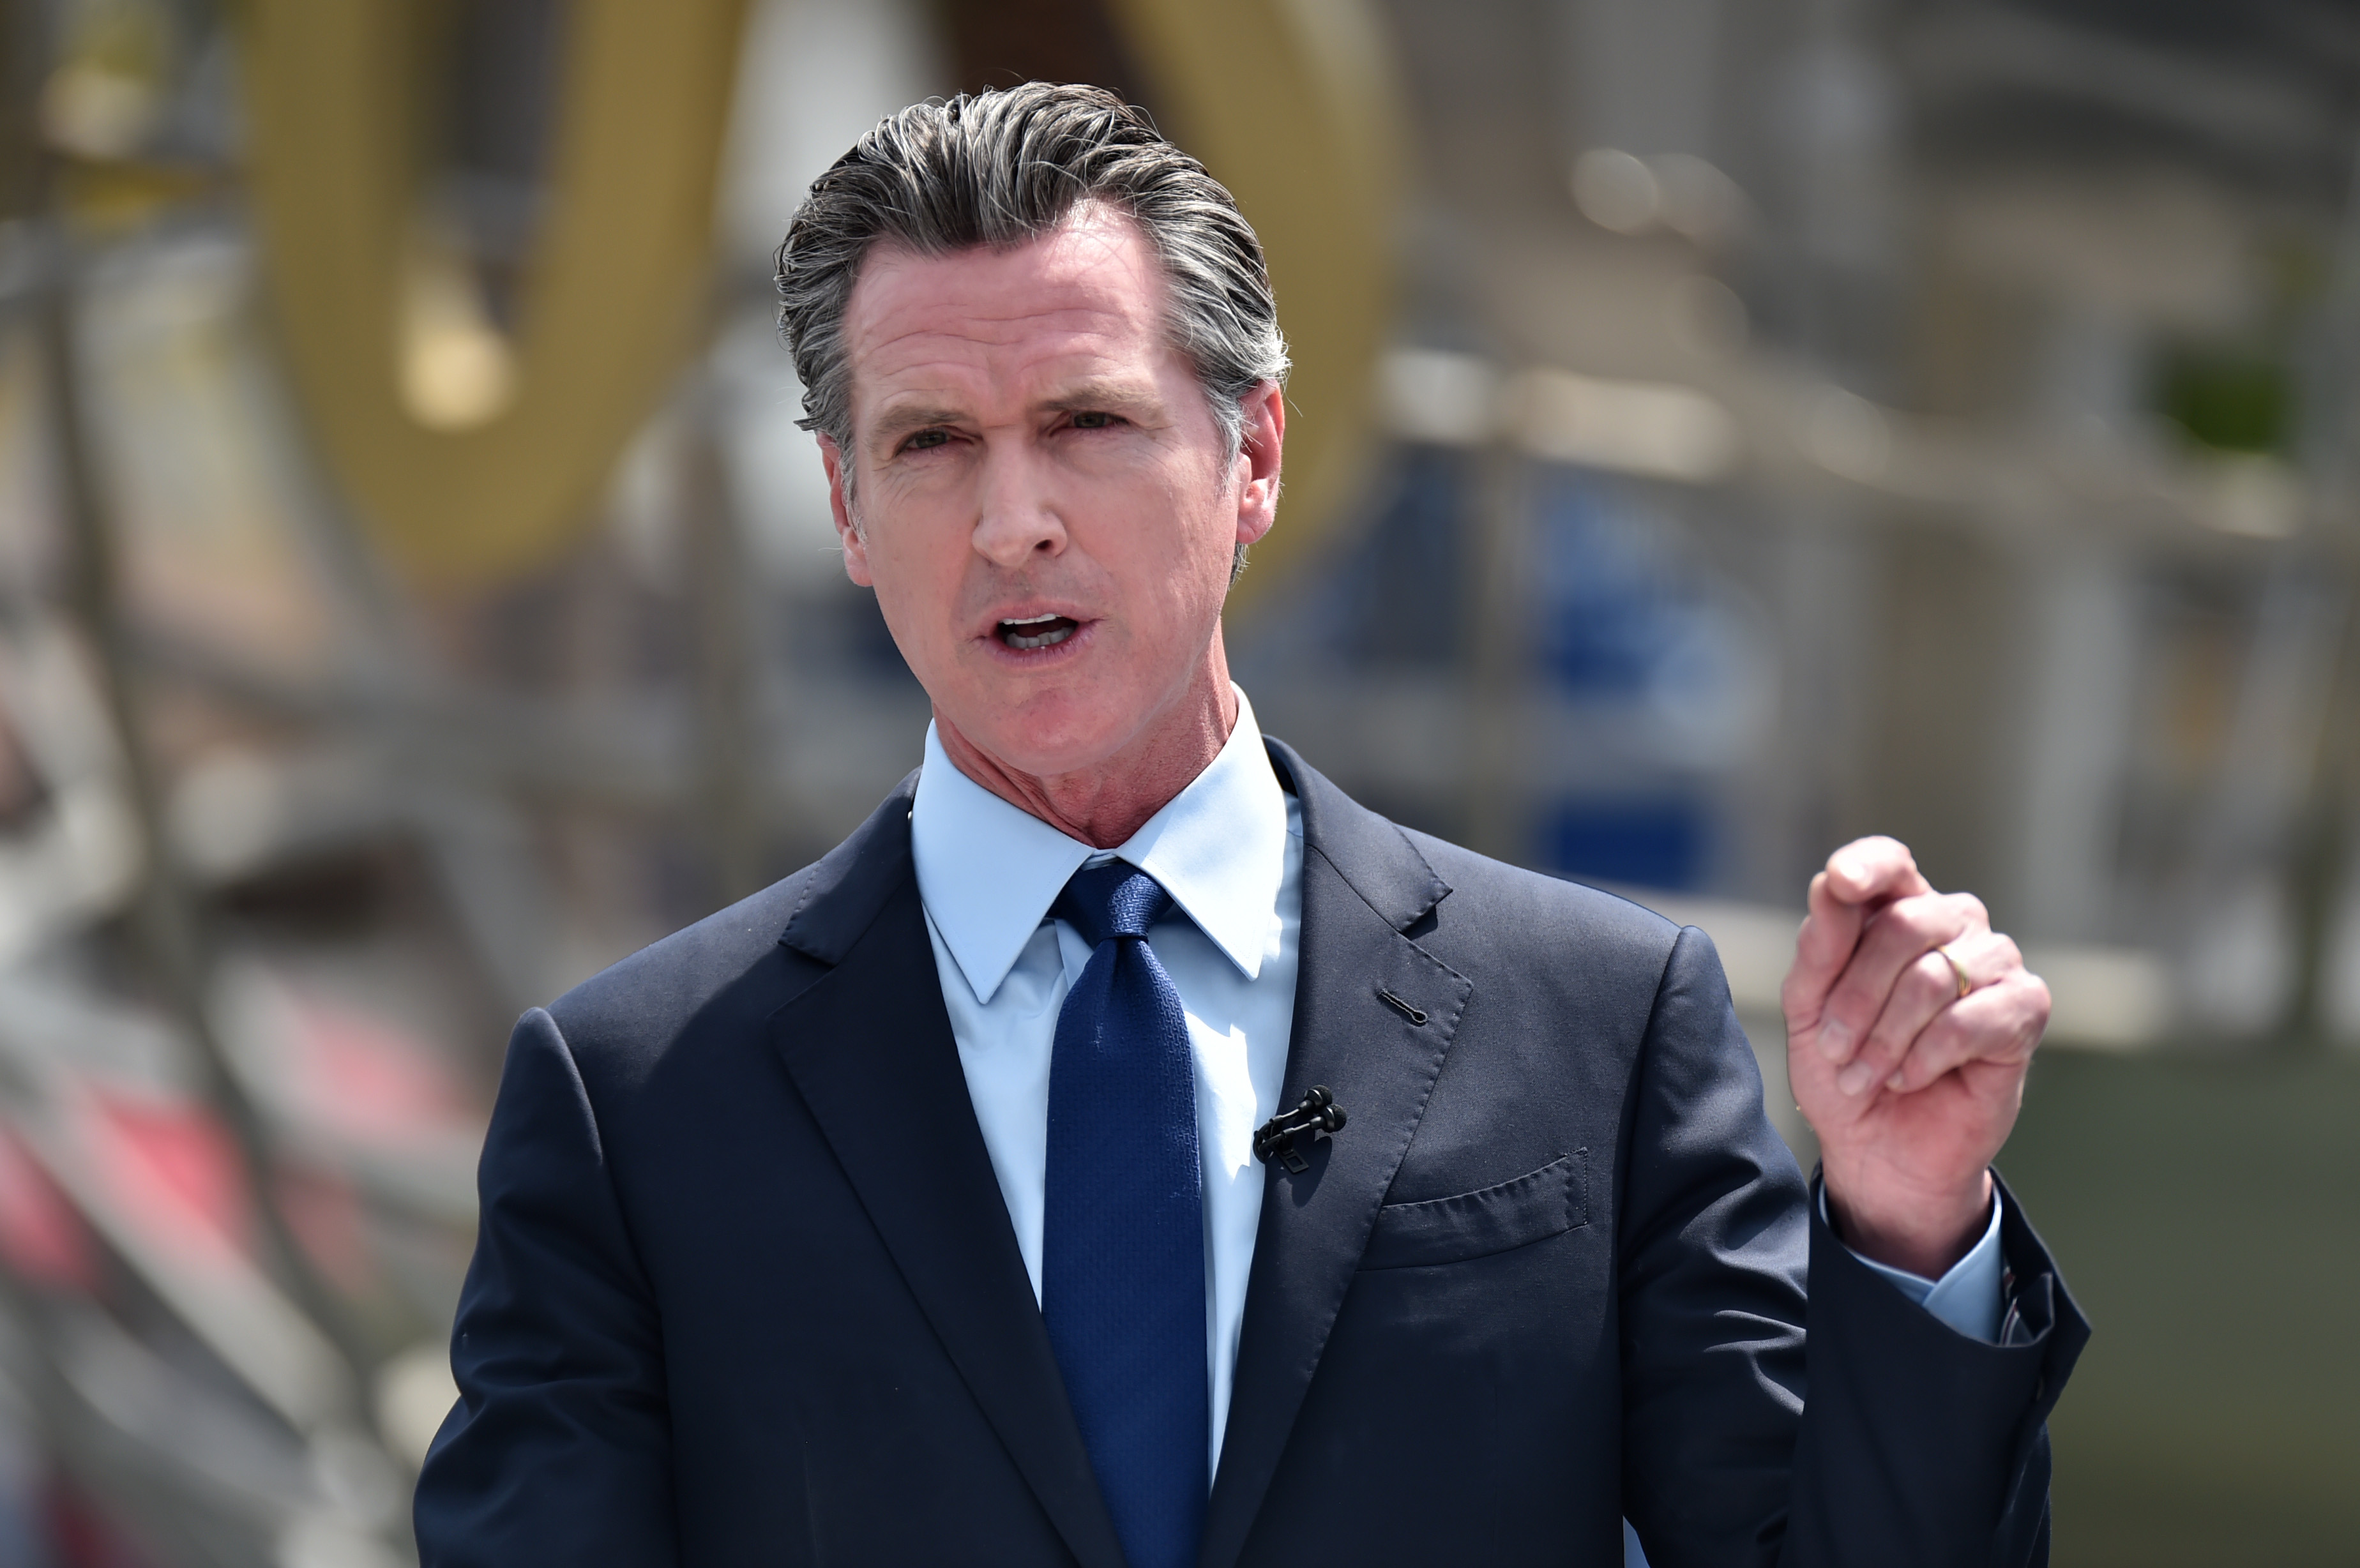 PlumpJack, Wine Shop Owned by Gavin Newsom, Sees Fourth Break-In This Year